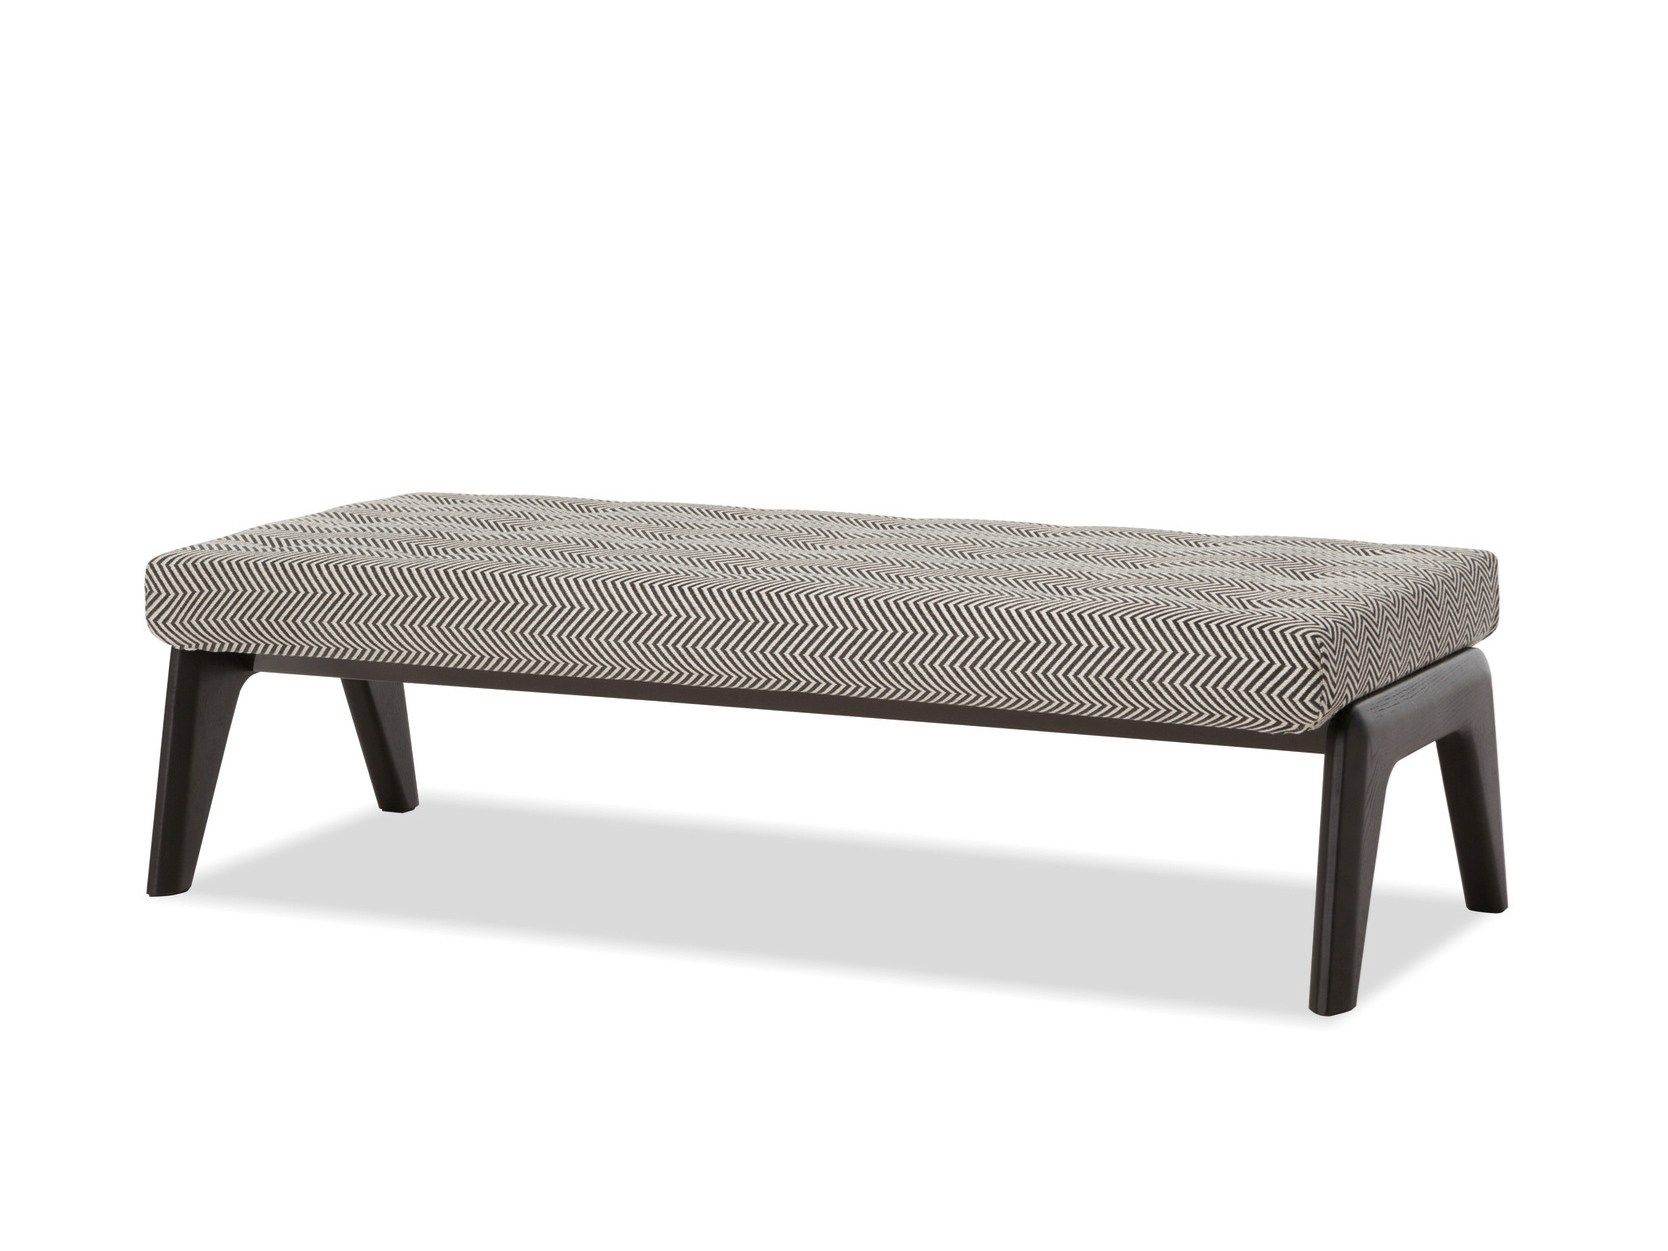 Upholstered fabric bench Kirk Collection by Minotti | design Rodolfo ...